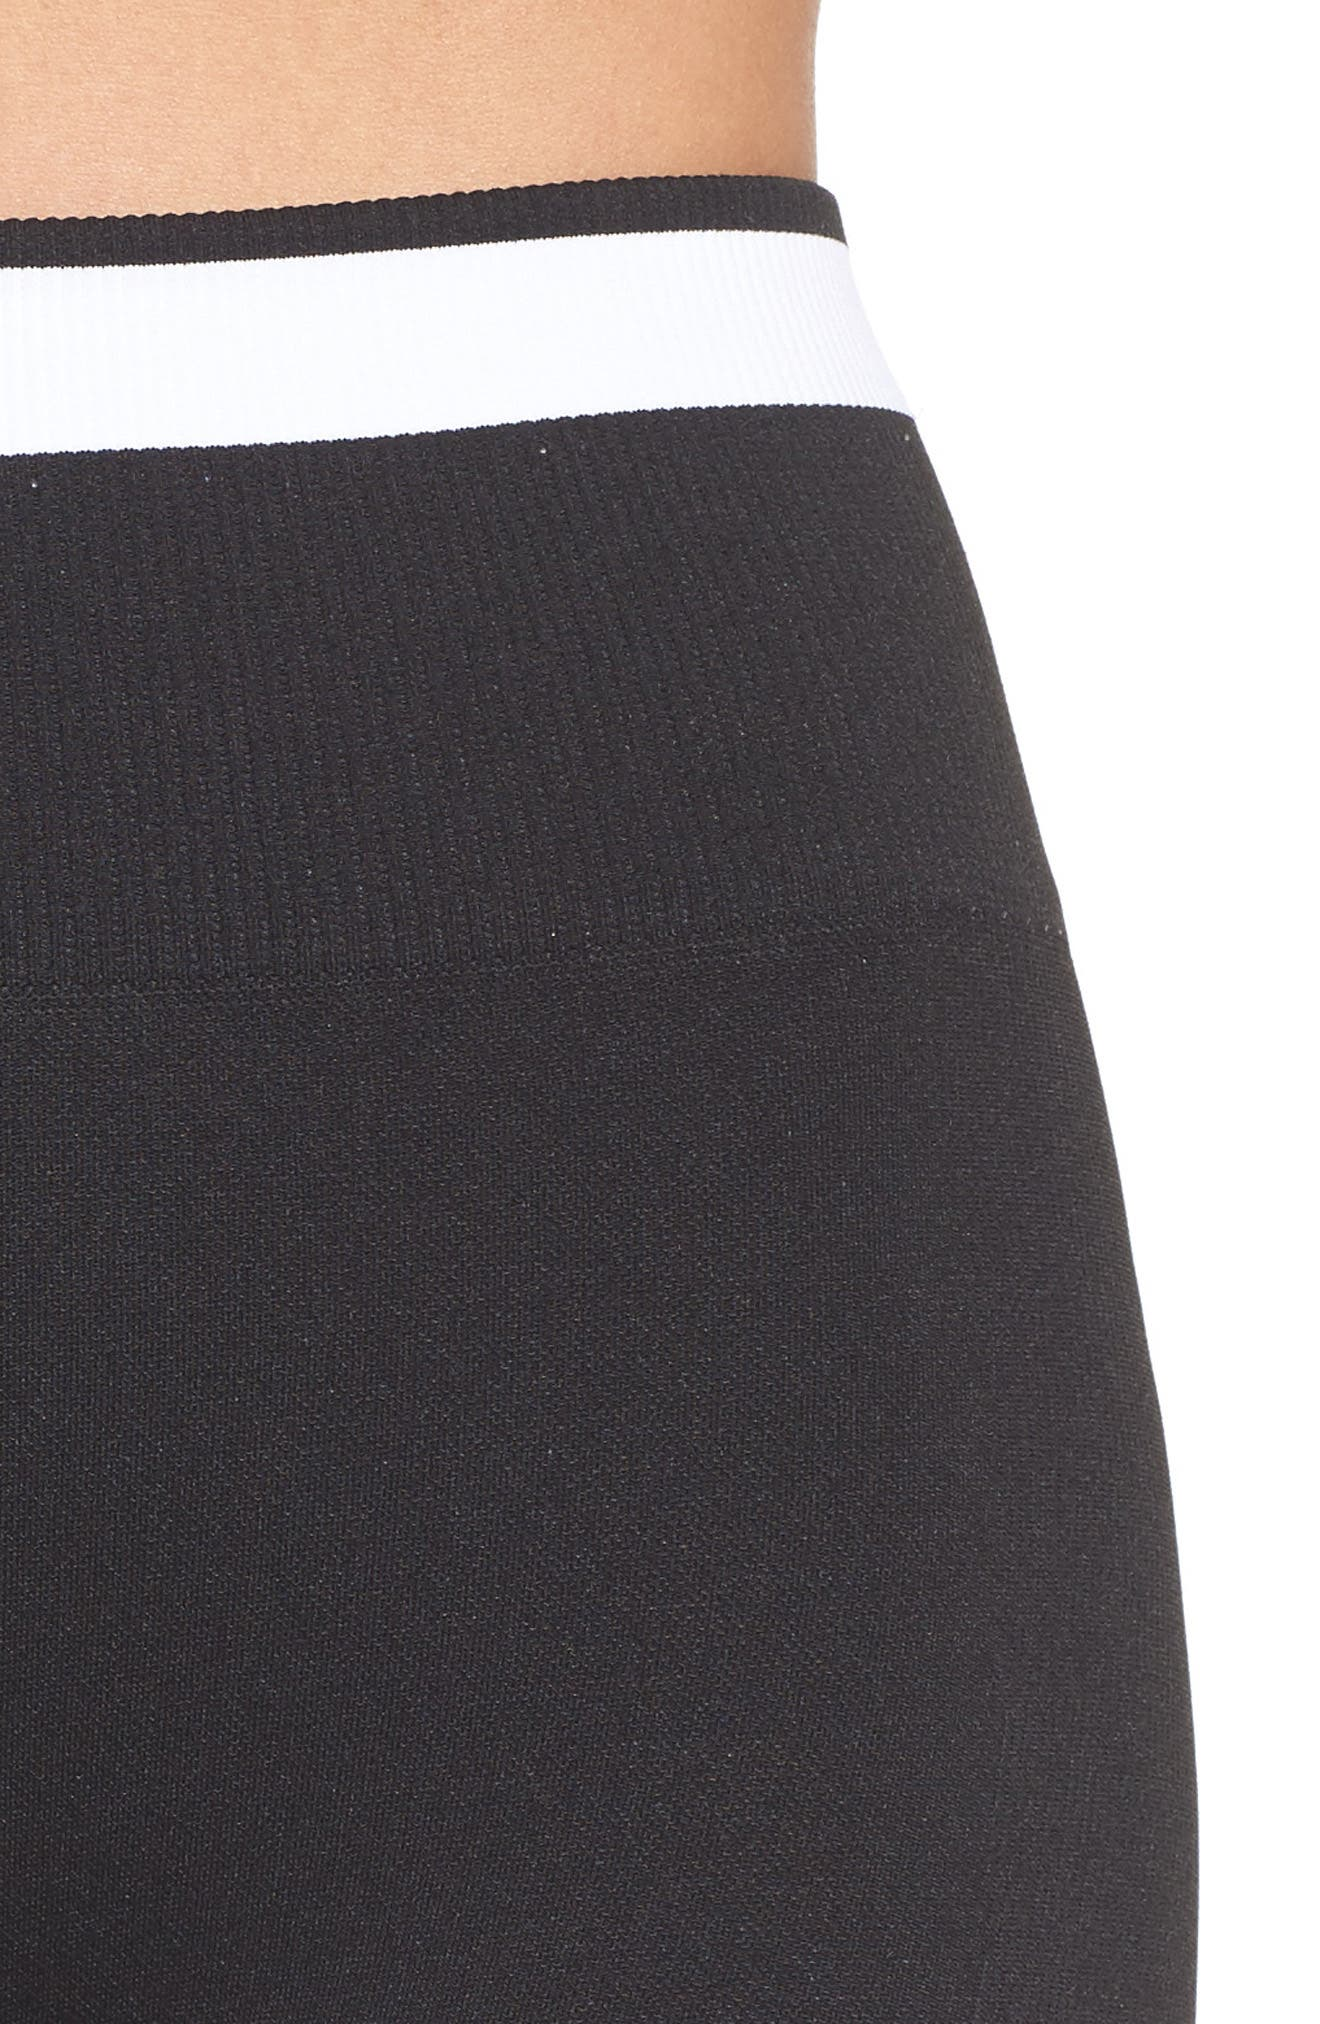 Ace Performance Tights,                             Alternate thumbnail 8, color,